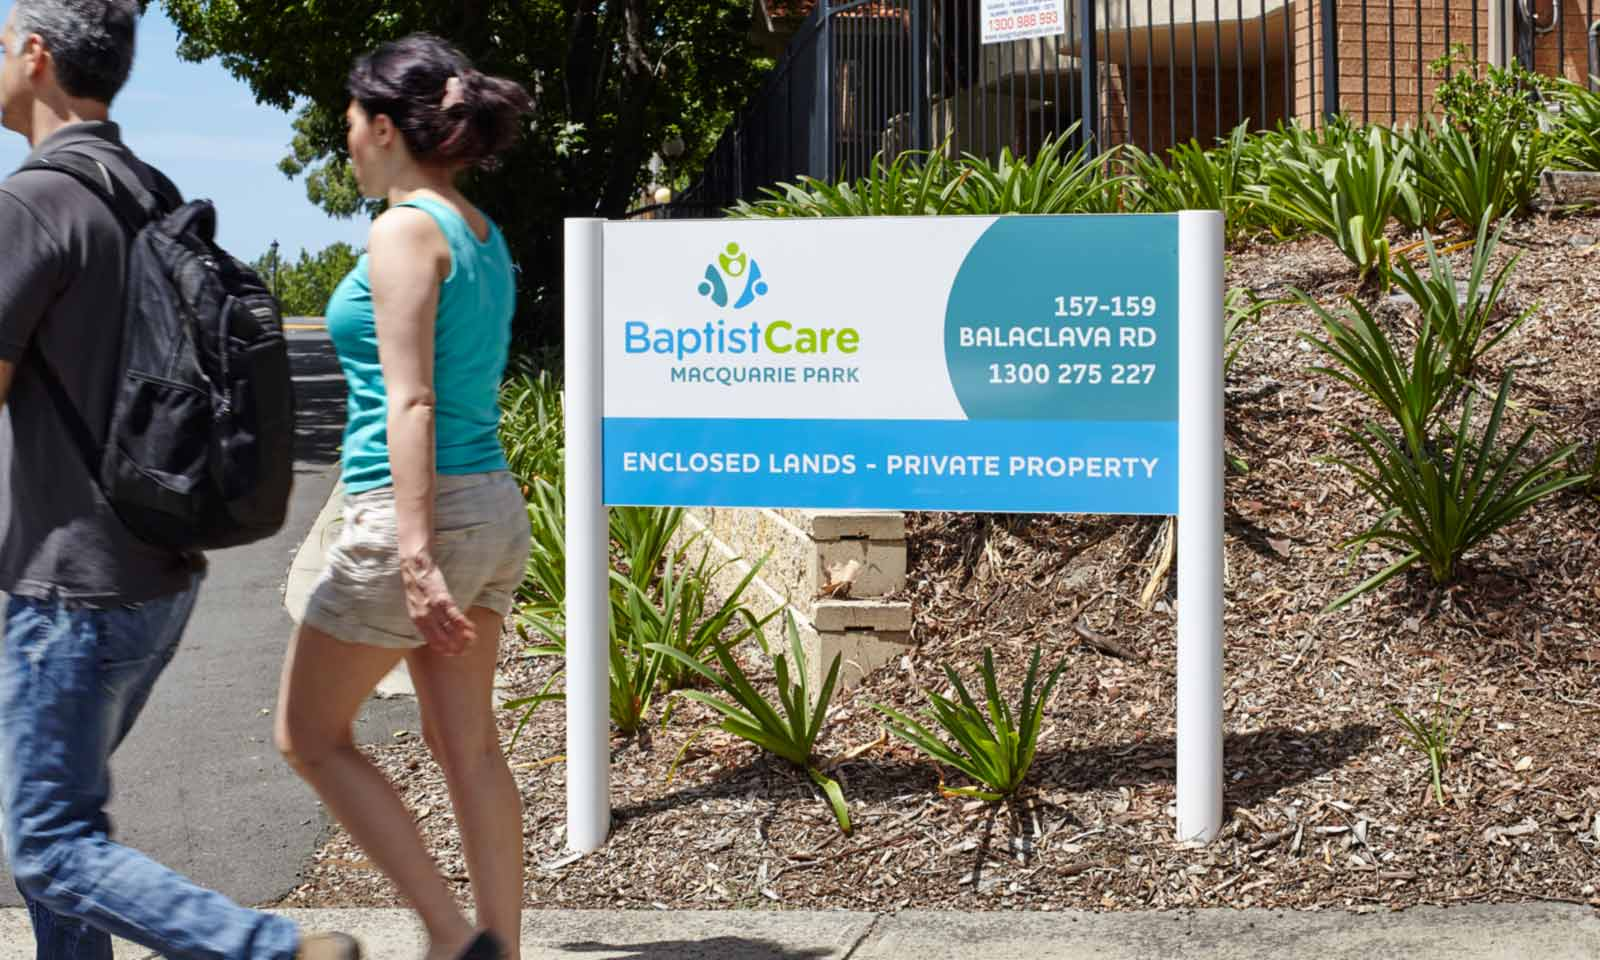 Sydney way finding design, BaptistCare branded way-finding system.